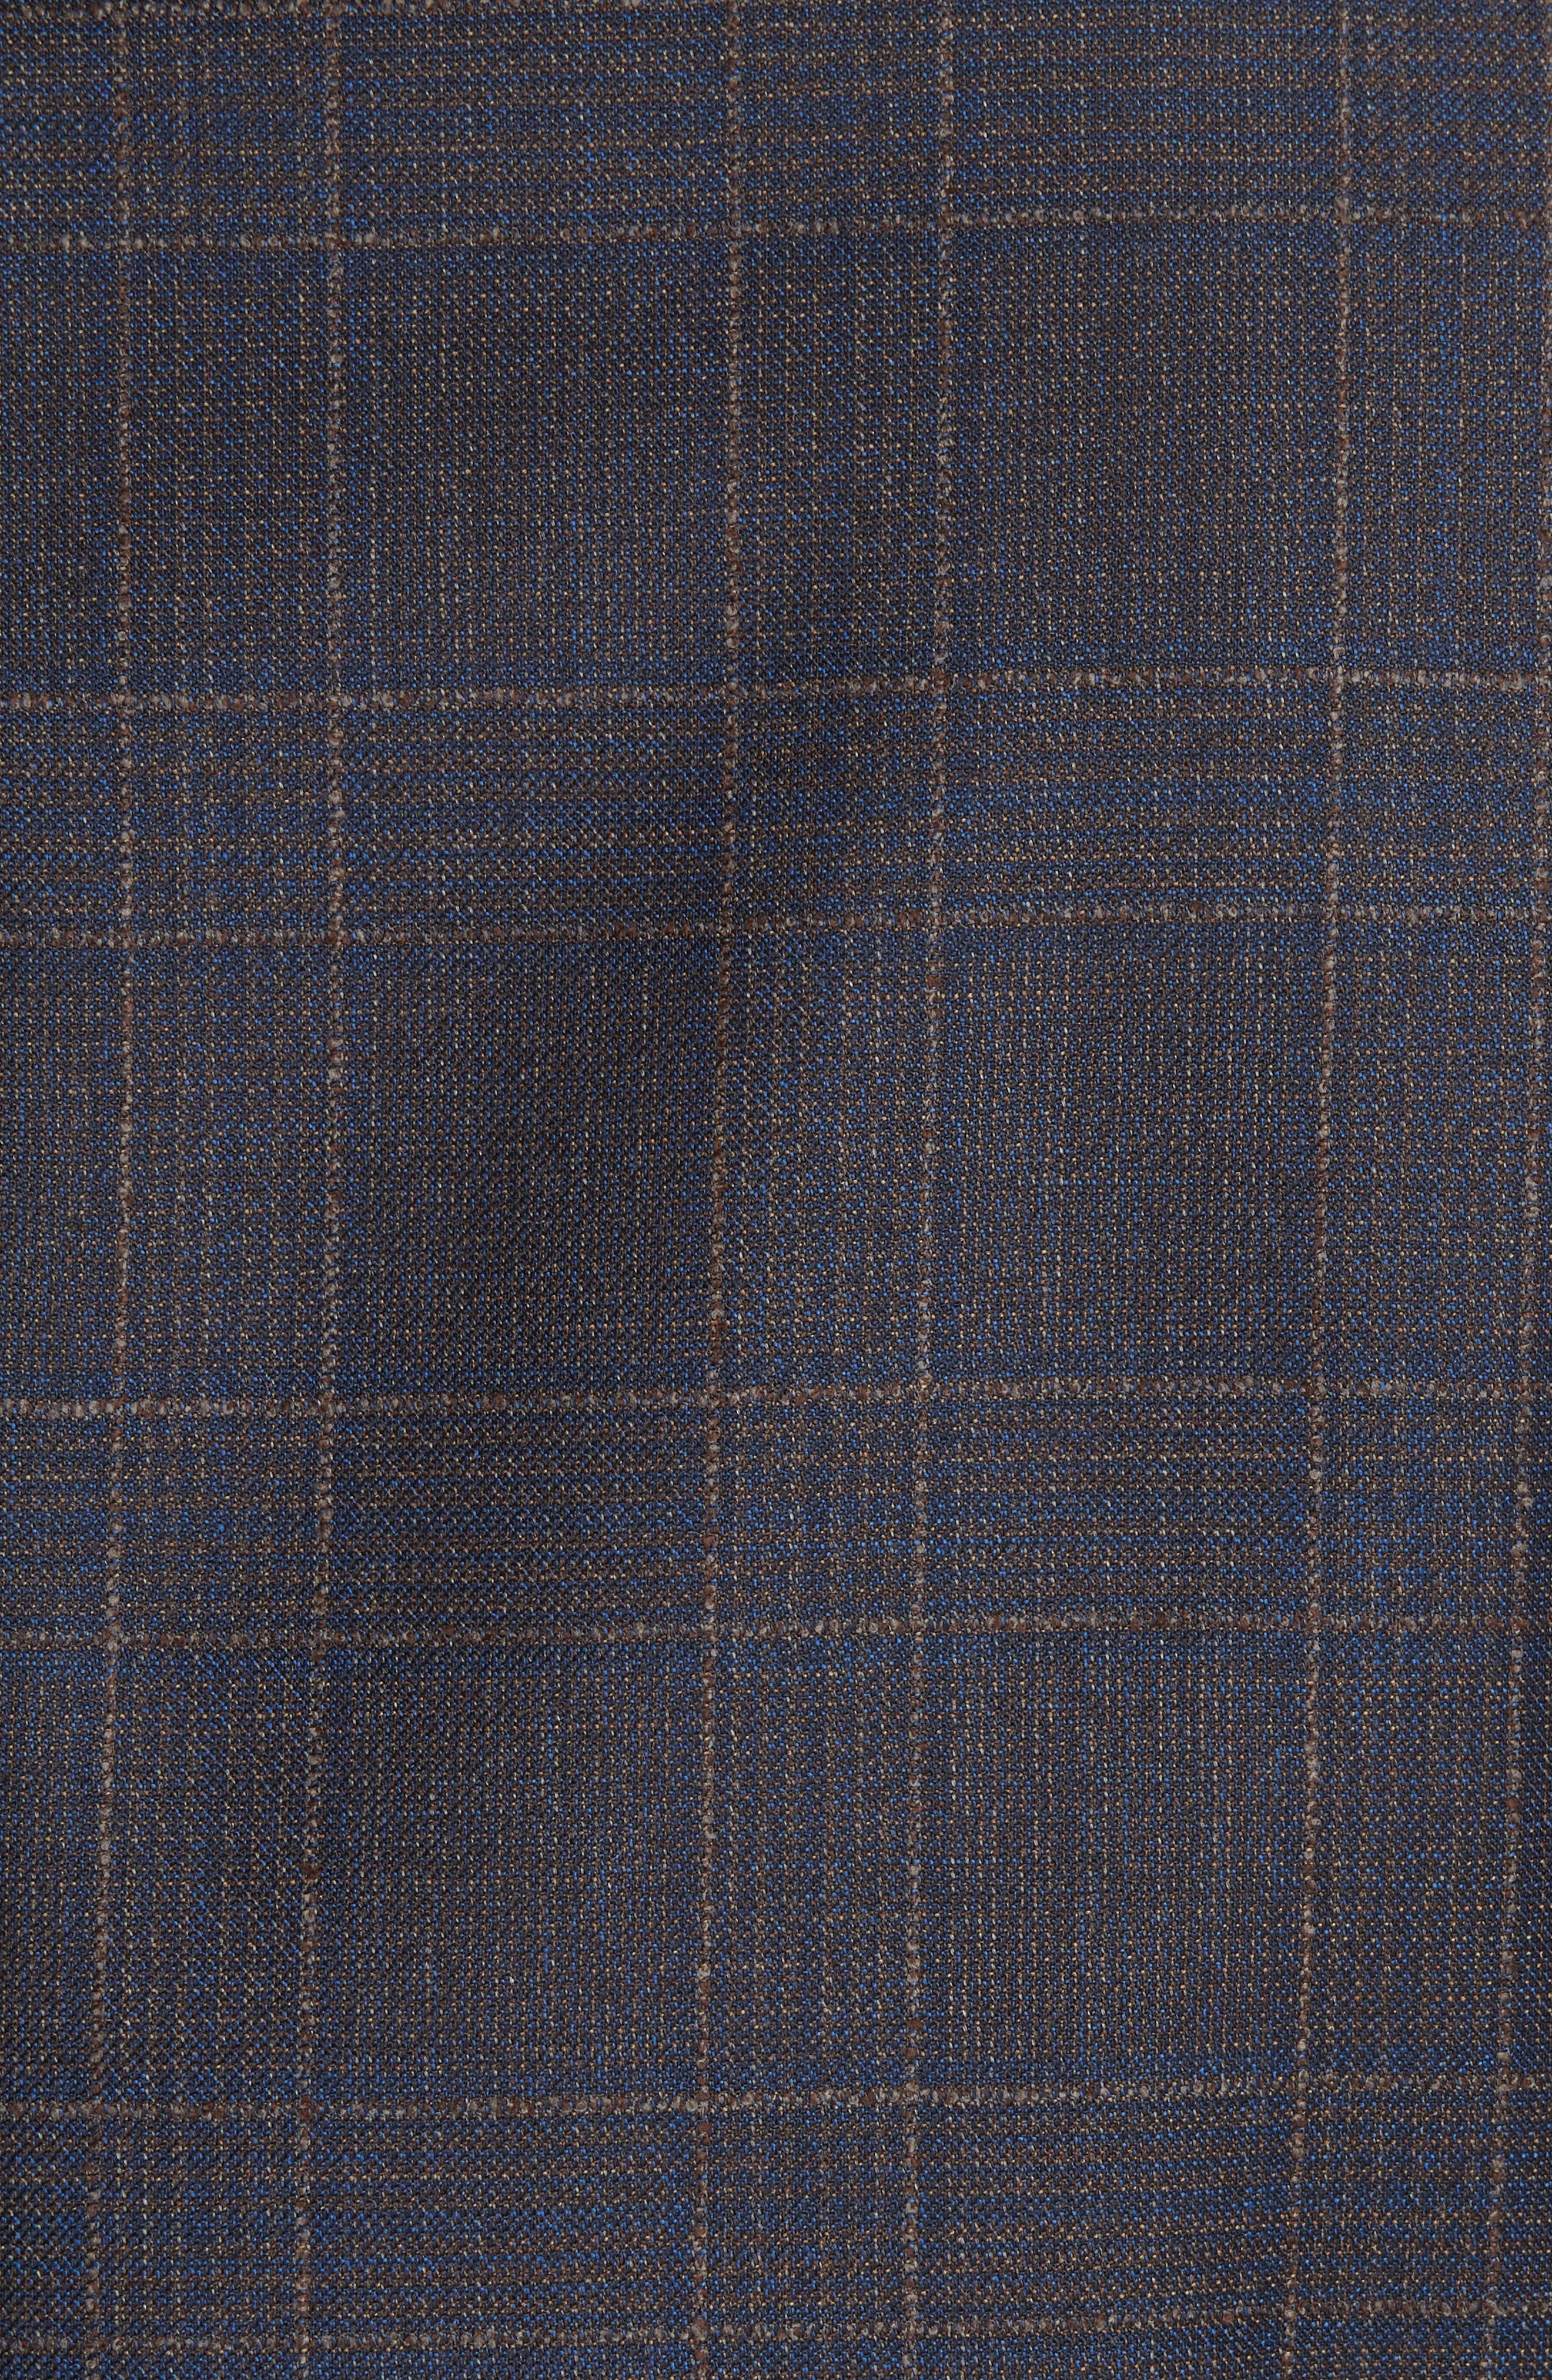 Classic Fit Plaid Wool Sport Coat,                             Alternate thumbnail 6, color,                             MED BROWN